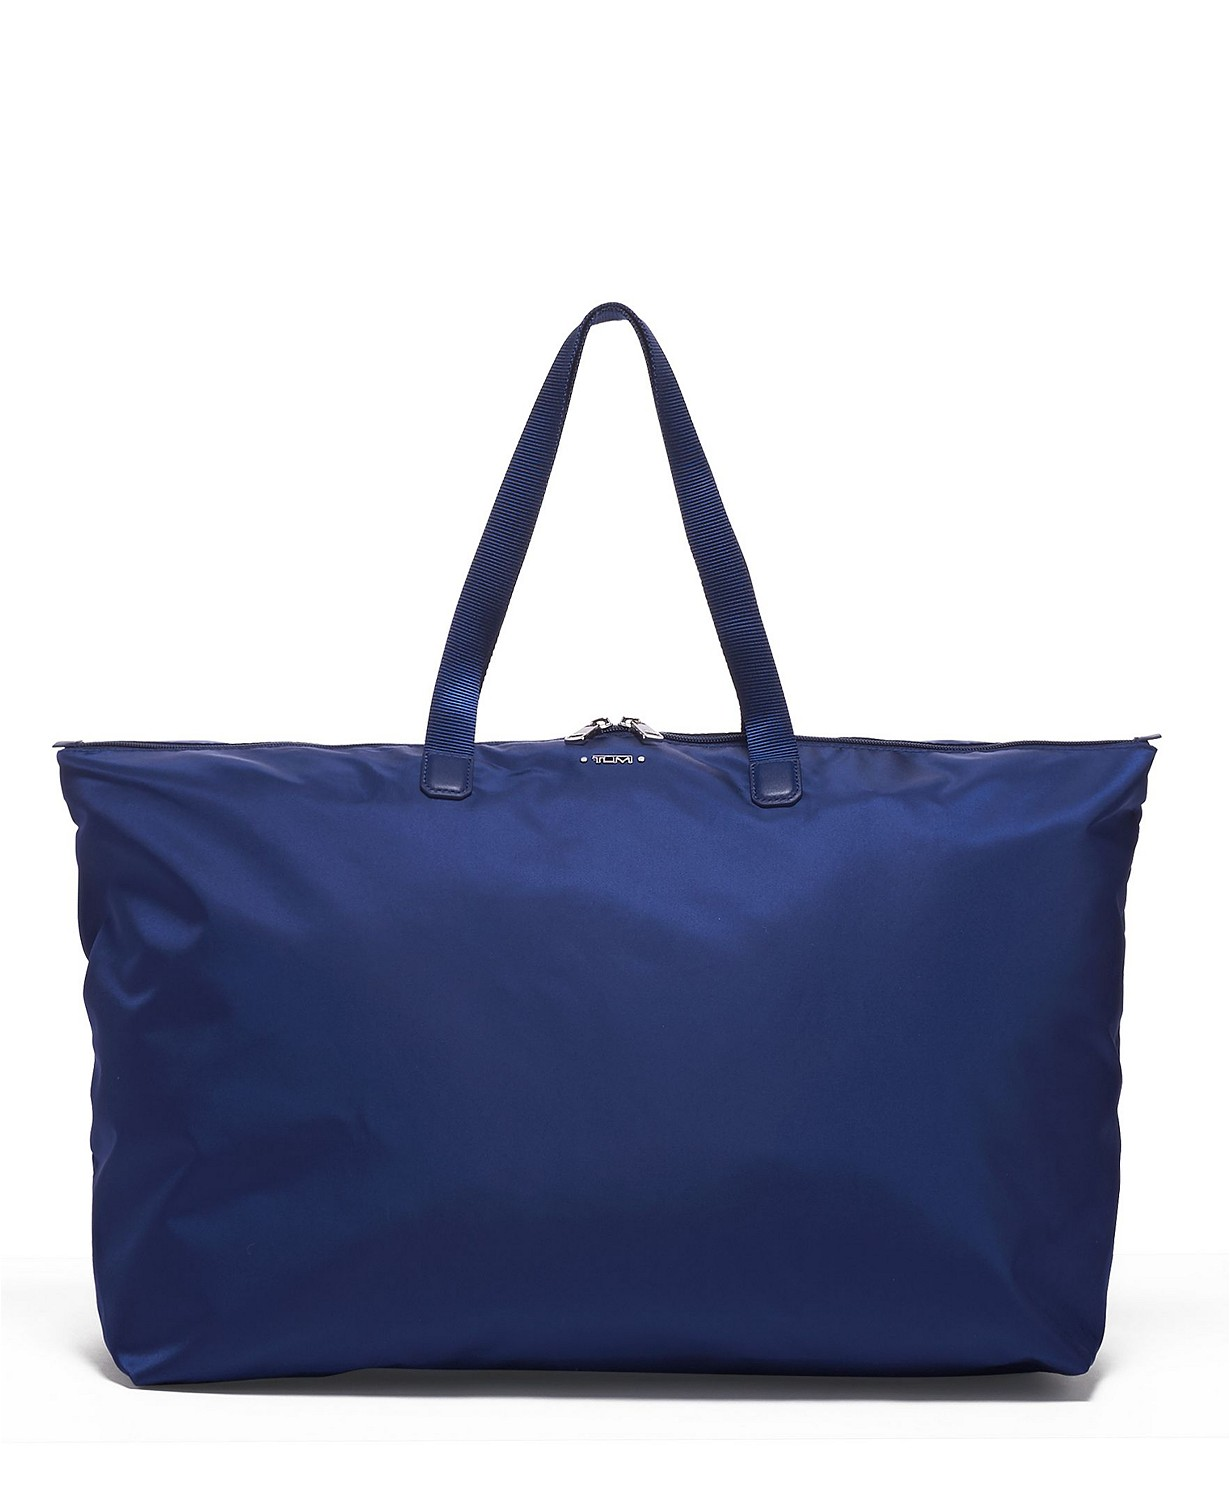 Navy Just In Case Tote, $69 at Macy's